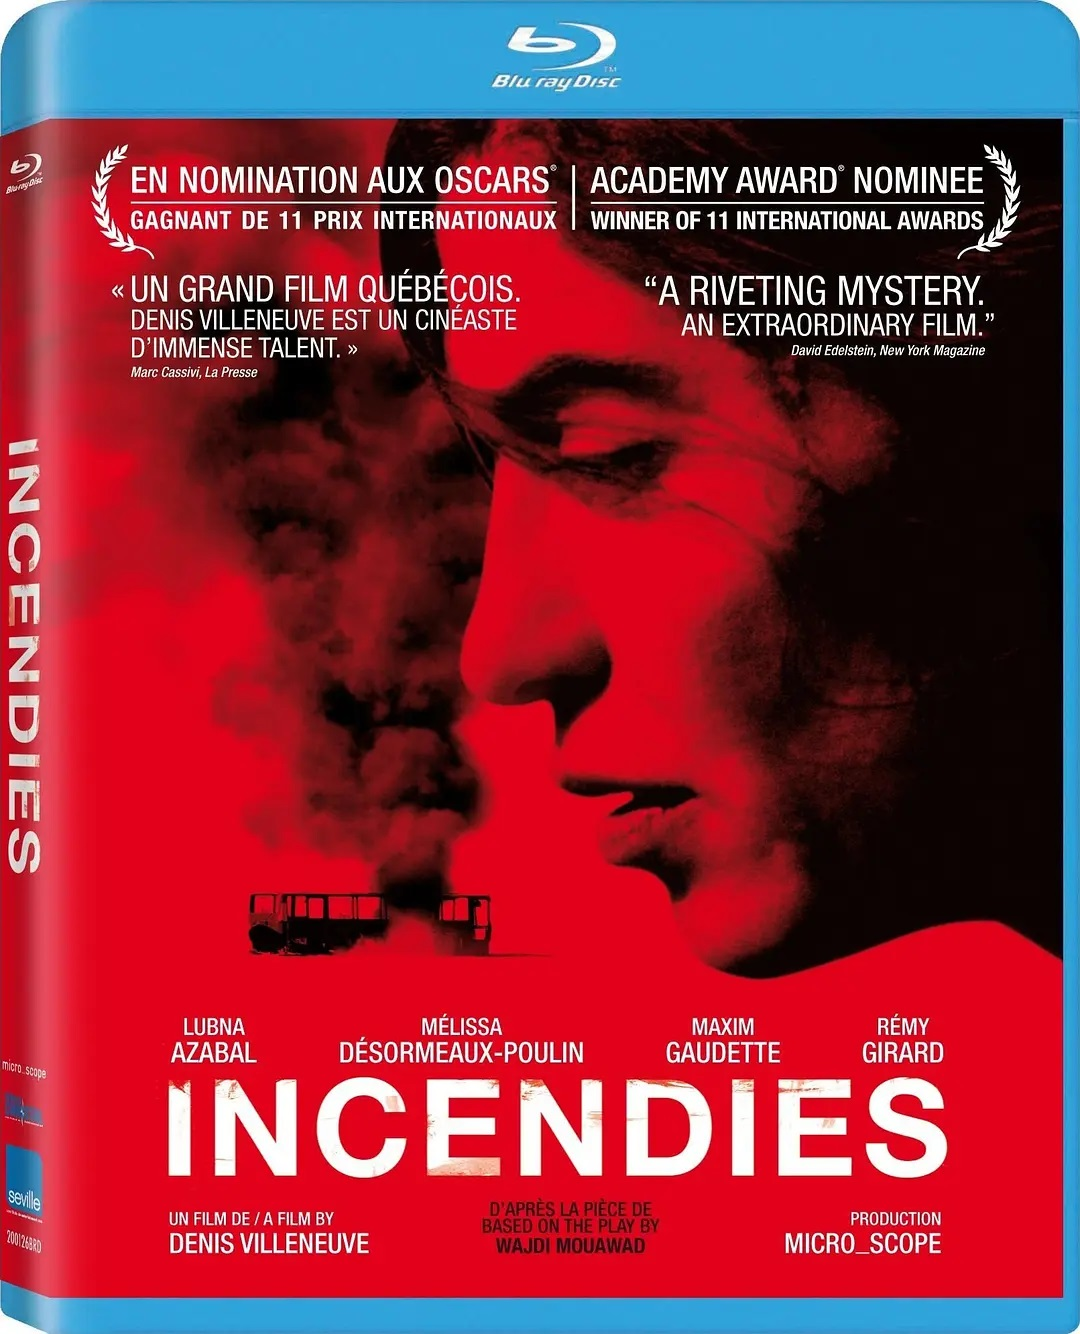 焦土之城/母亲的告白(港)/烈火焚身(台) 简繁英字幕 Incendies 2010 BluRay 1080p DTS-HD MA 5.1 x265.10bit-CHD